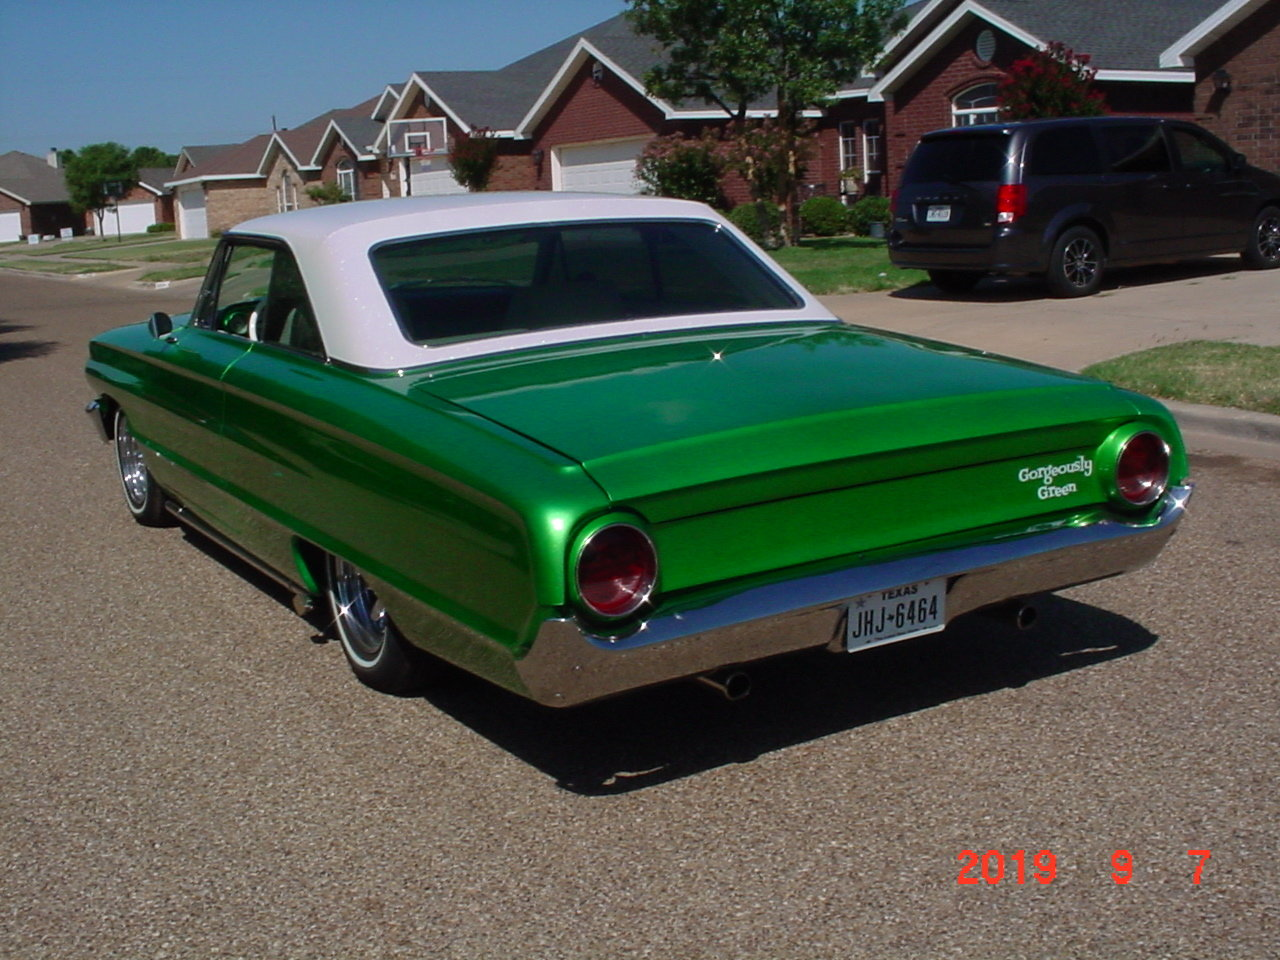 1964 Ford Galaxie 500 FULL CUSTOM For Sale (picture 4 of 6)